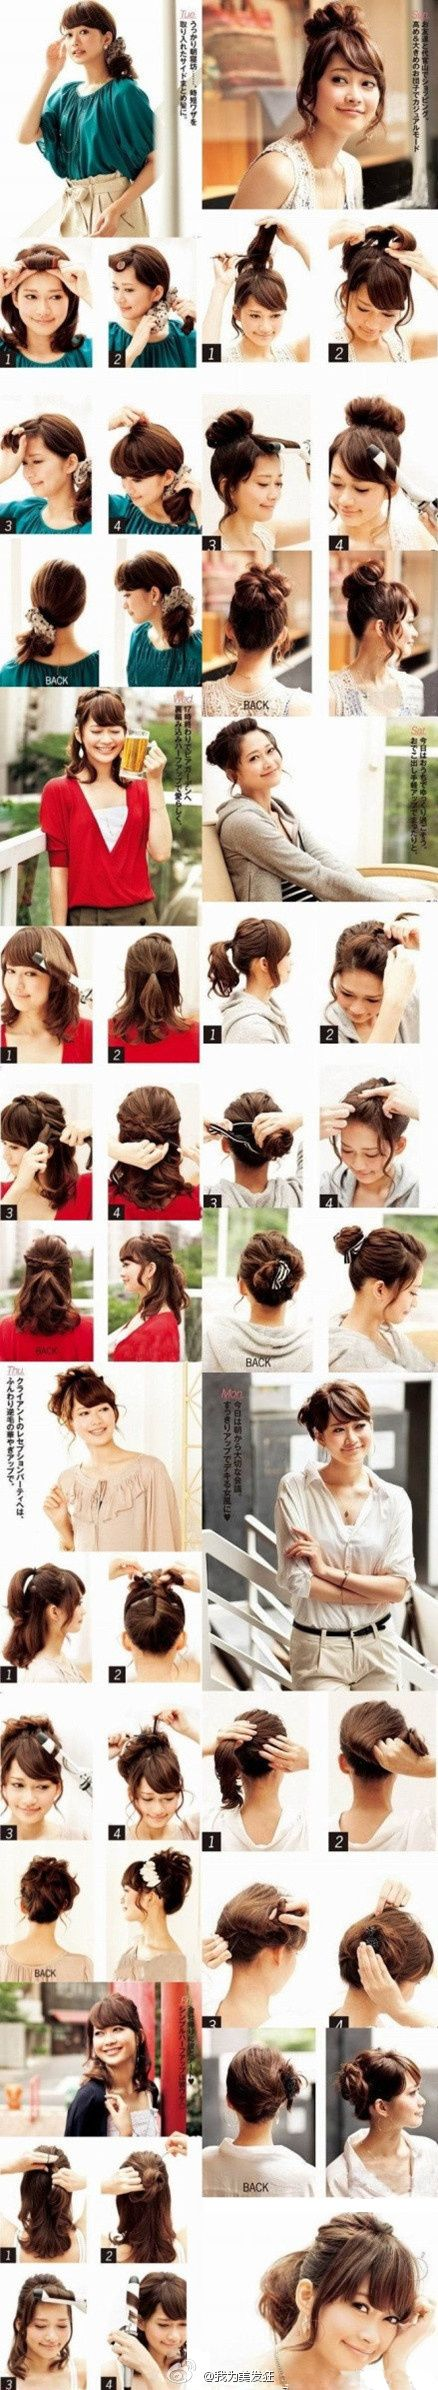 """For when my hair gets longer: """"japanese style!"""""""